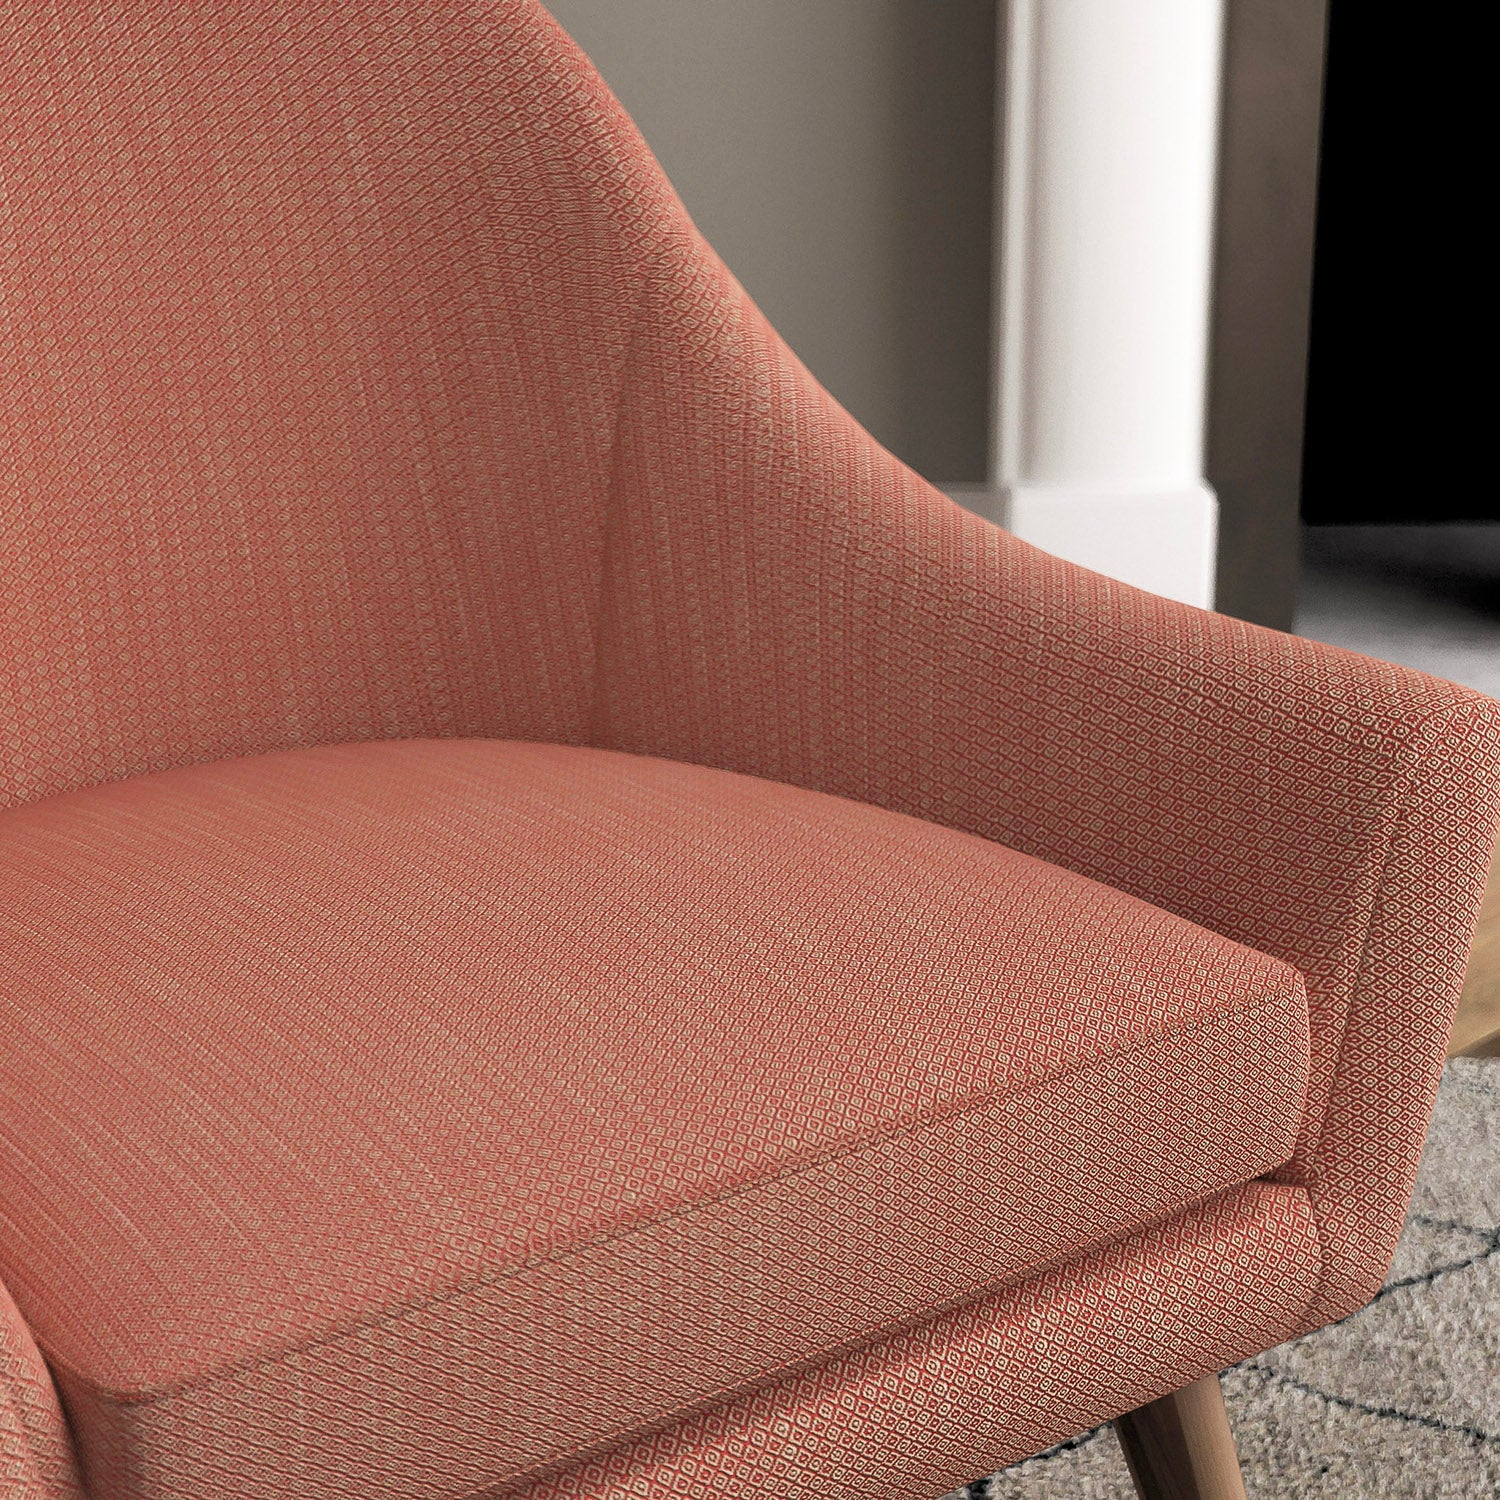 Chair with a berry and neutral upholstery fabric with a small diamond weave fabric